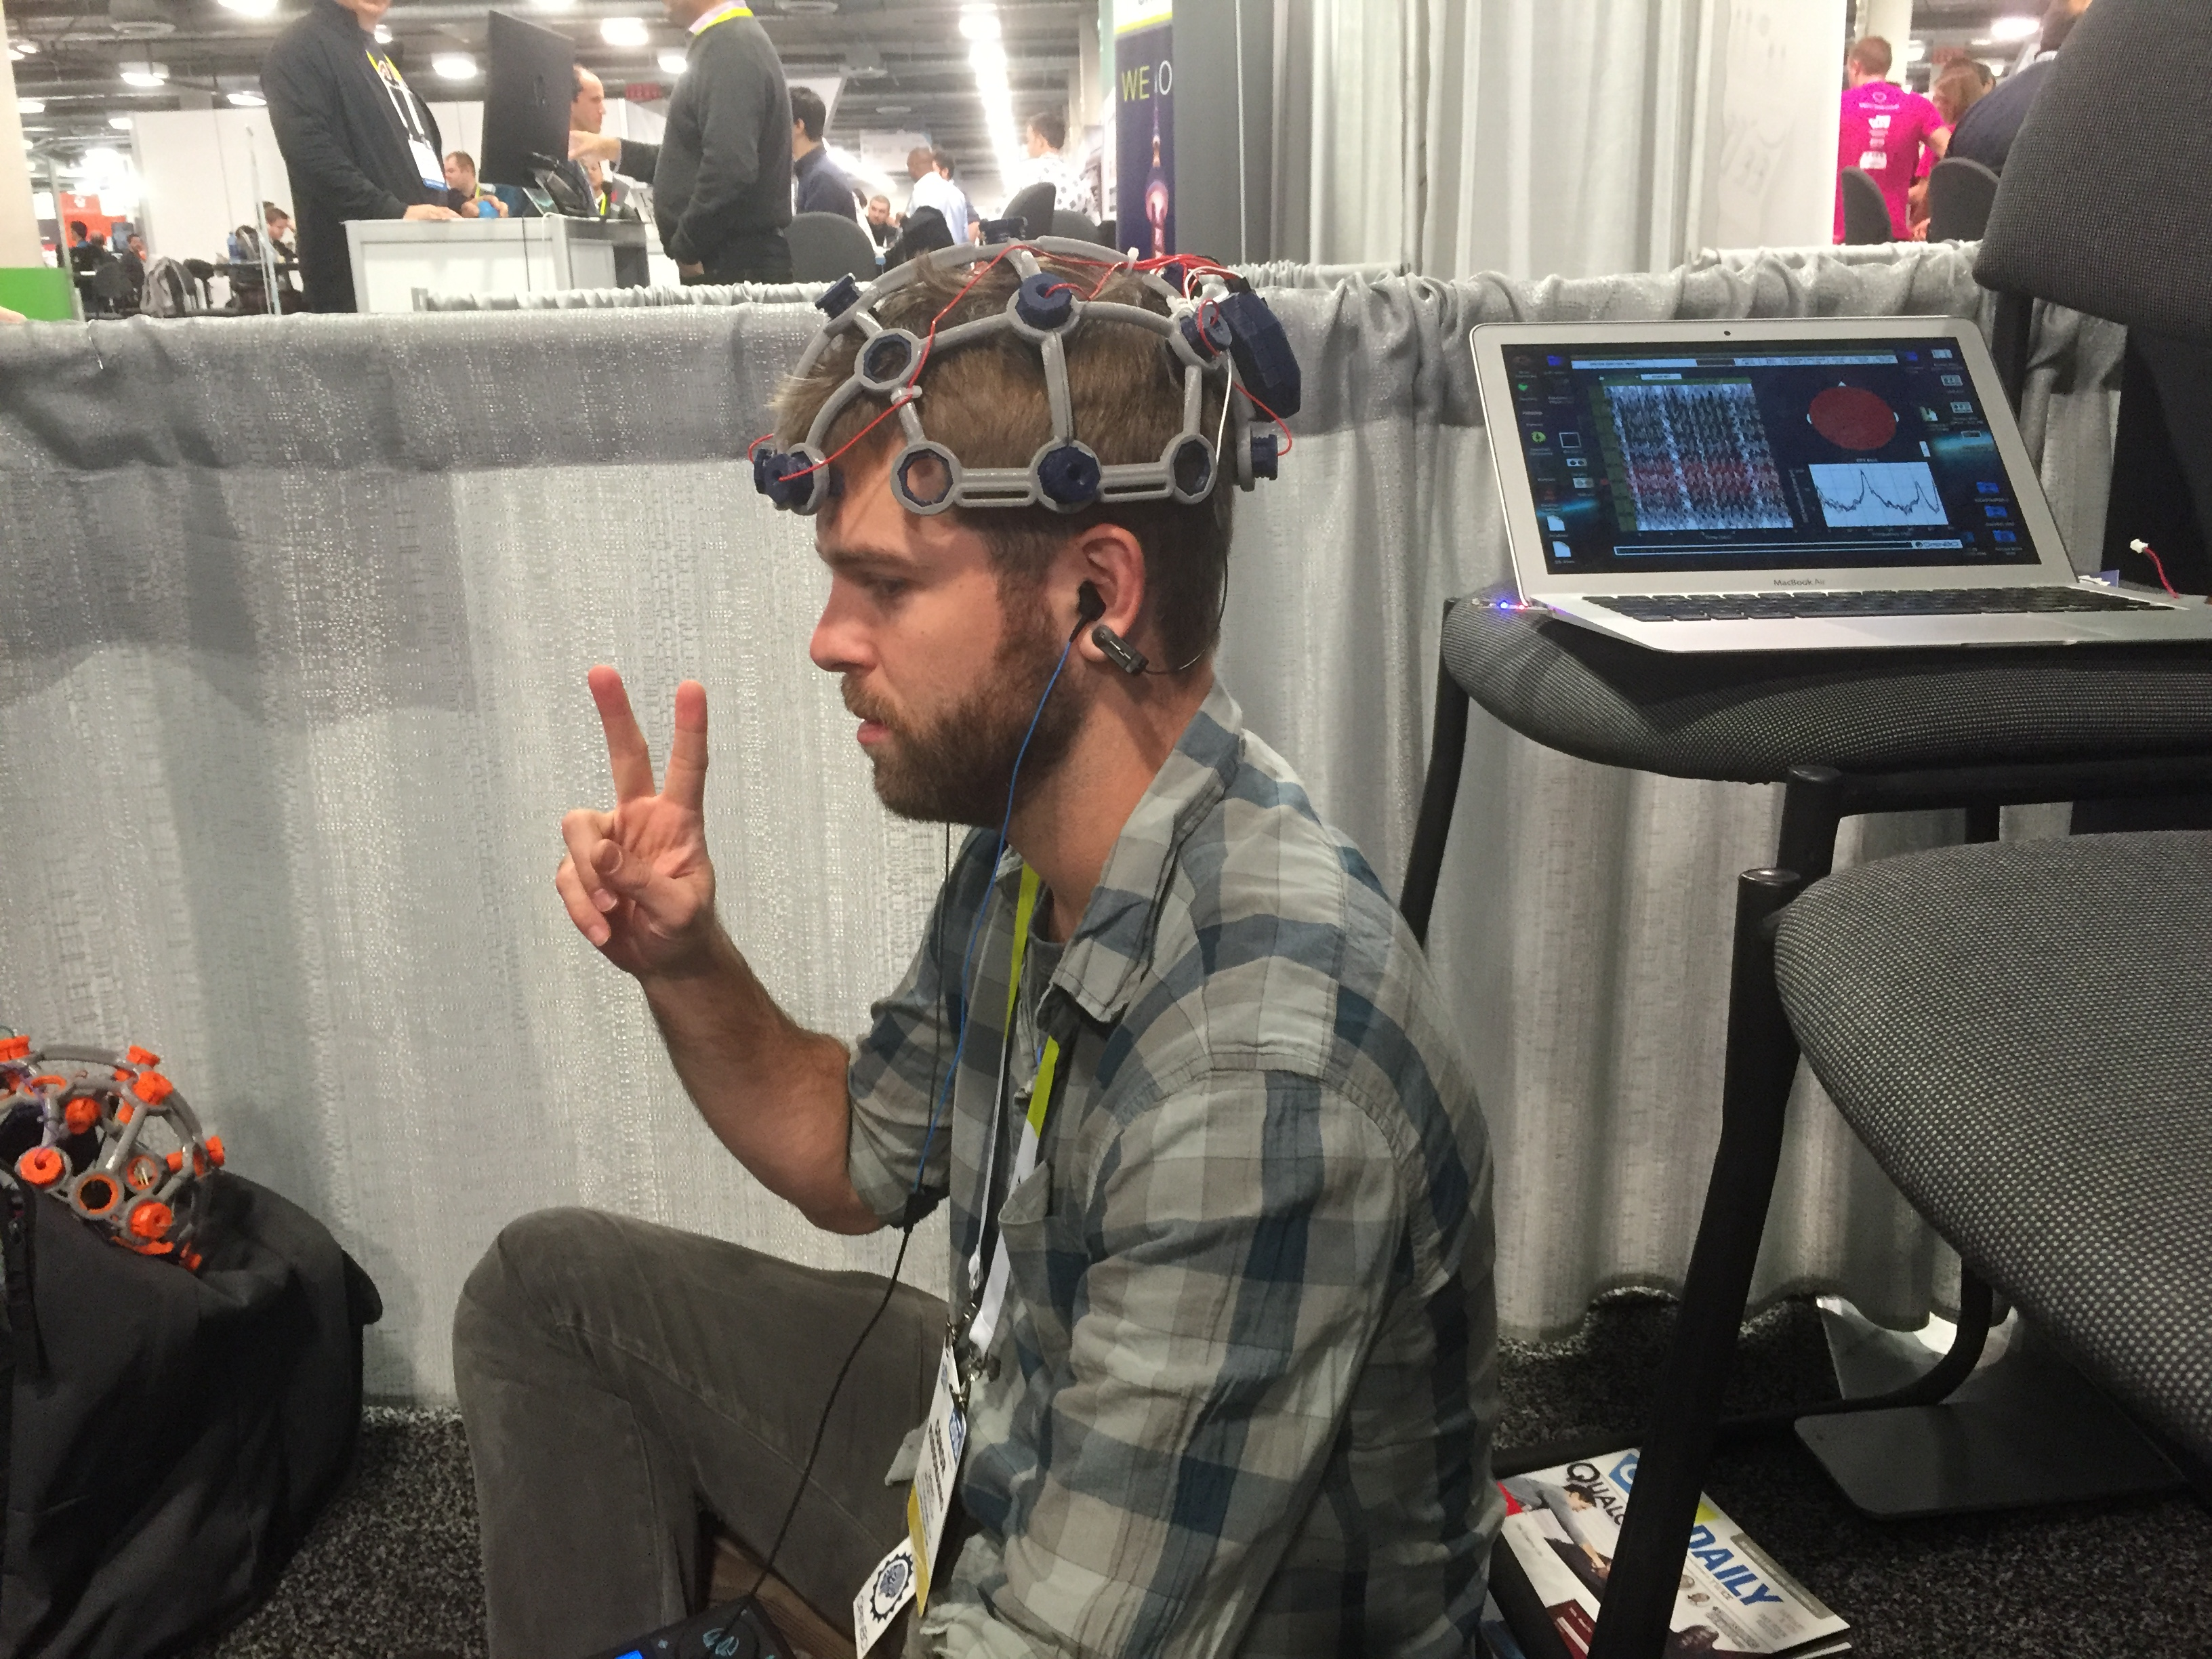 Conor wears Open BCI's Ultracortex next to a monitor that's showing his EEG.